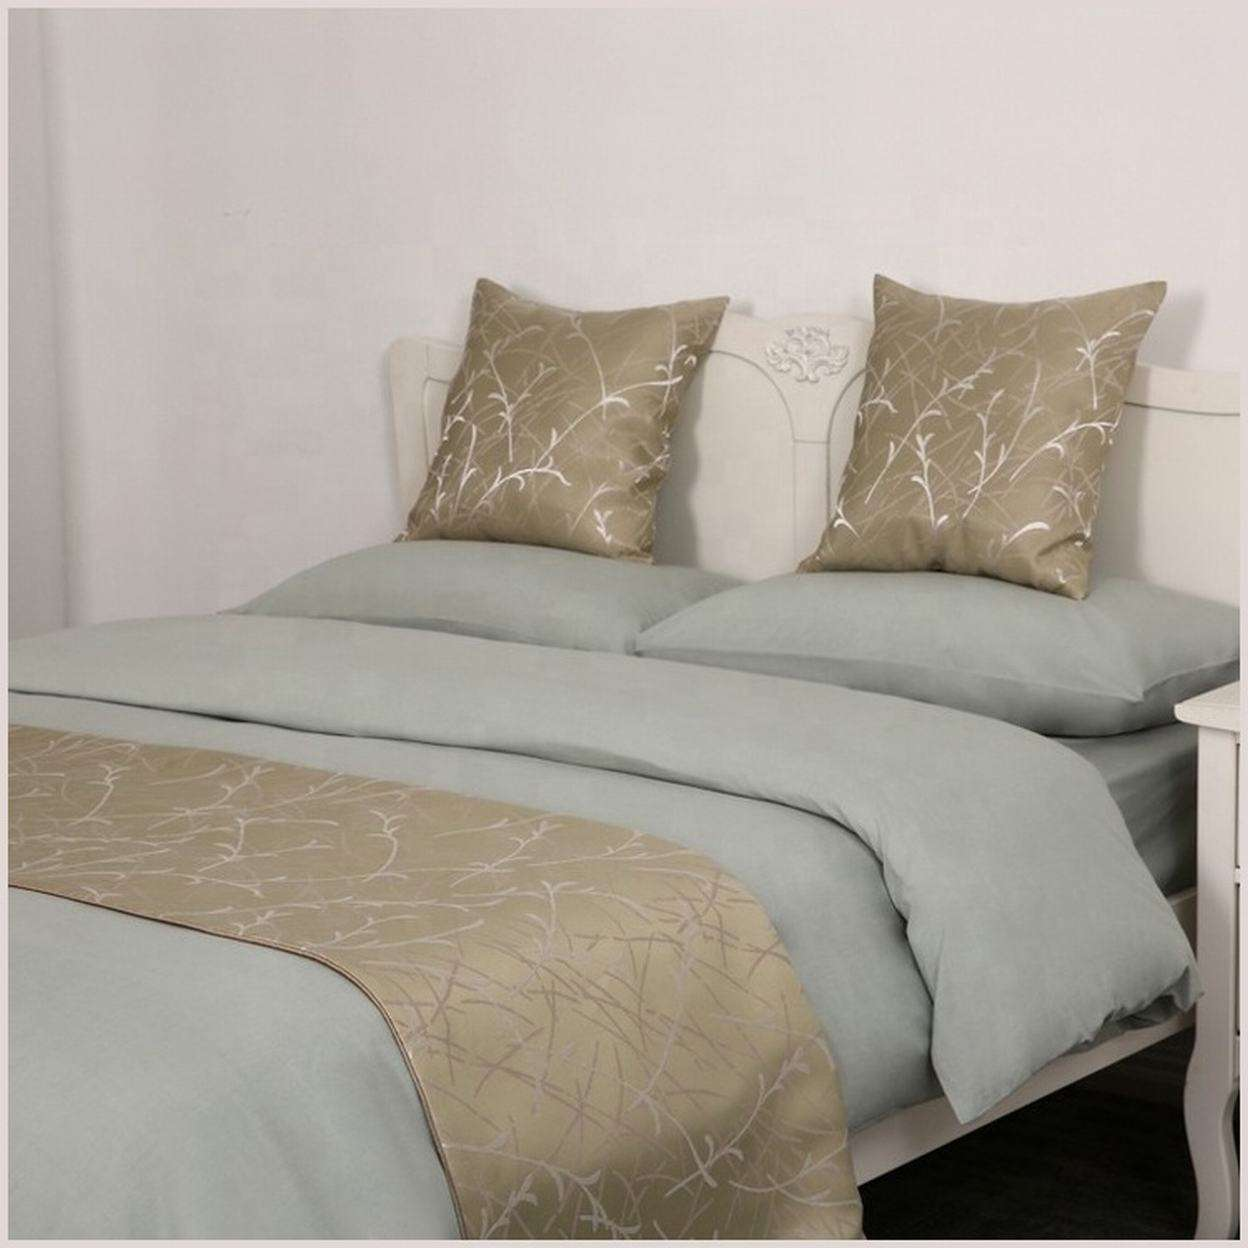 Allbright Luxury hotel decorative bed side size of queen hotel bed runner and cushions